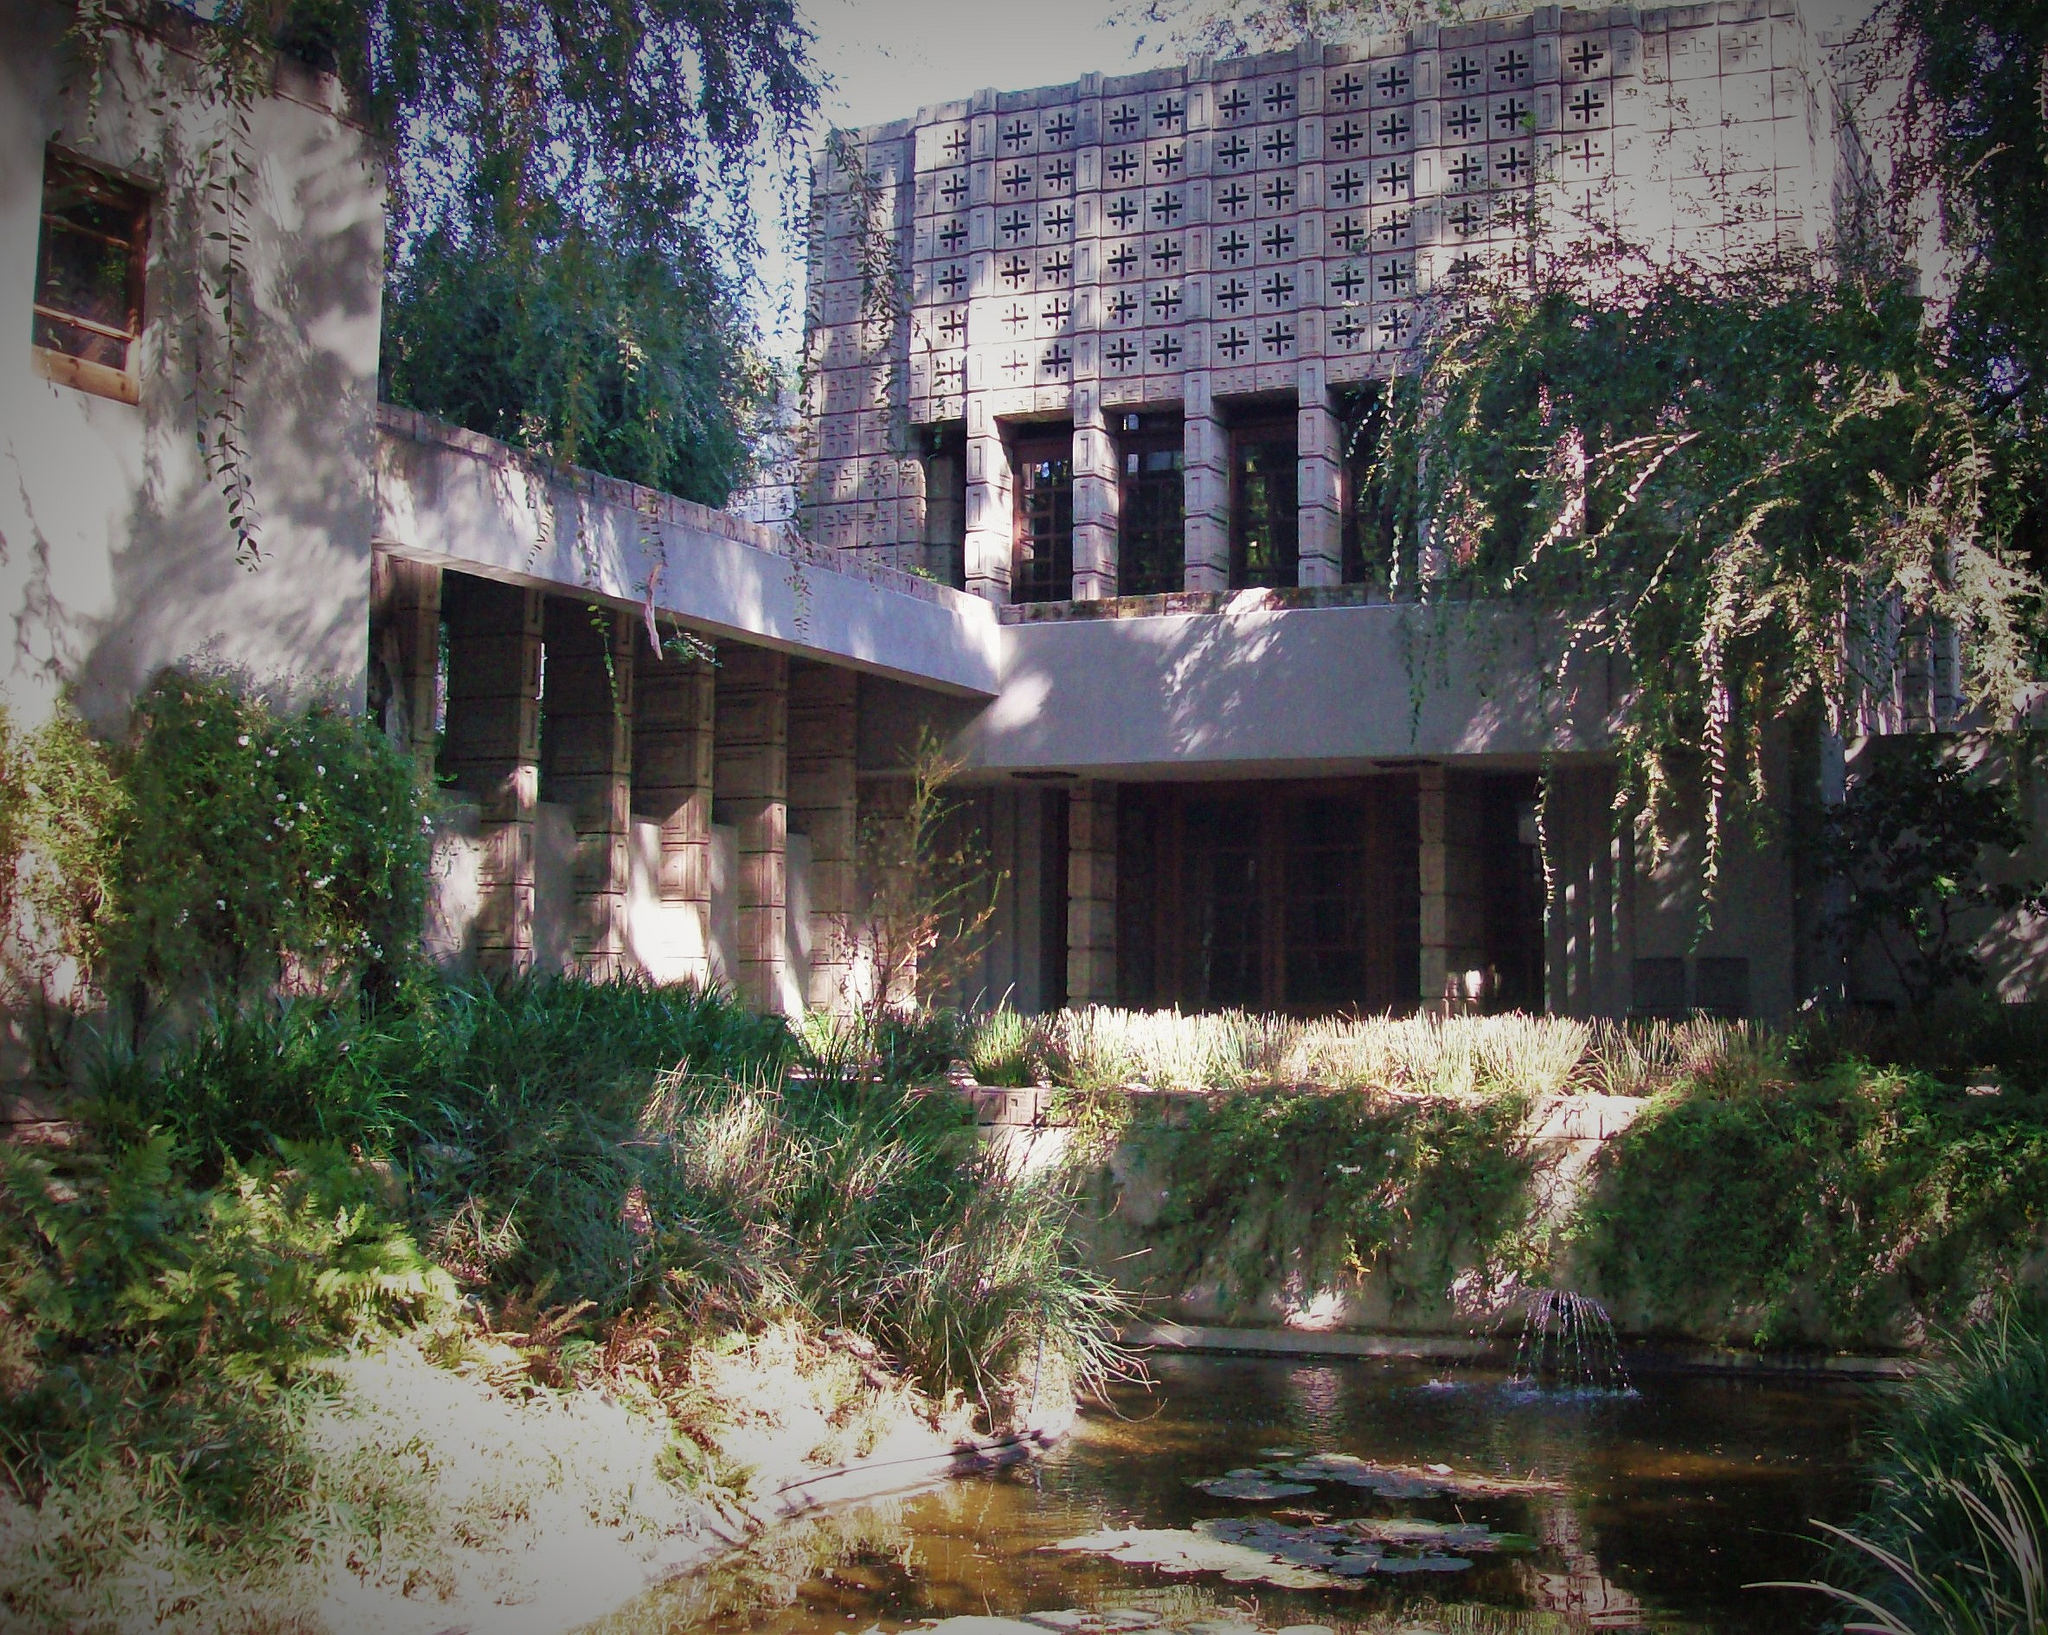 Frank Lloyd Wright Visiting This Famous Frank Lloyd Wright Home With Wine You